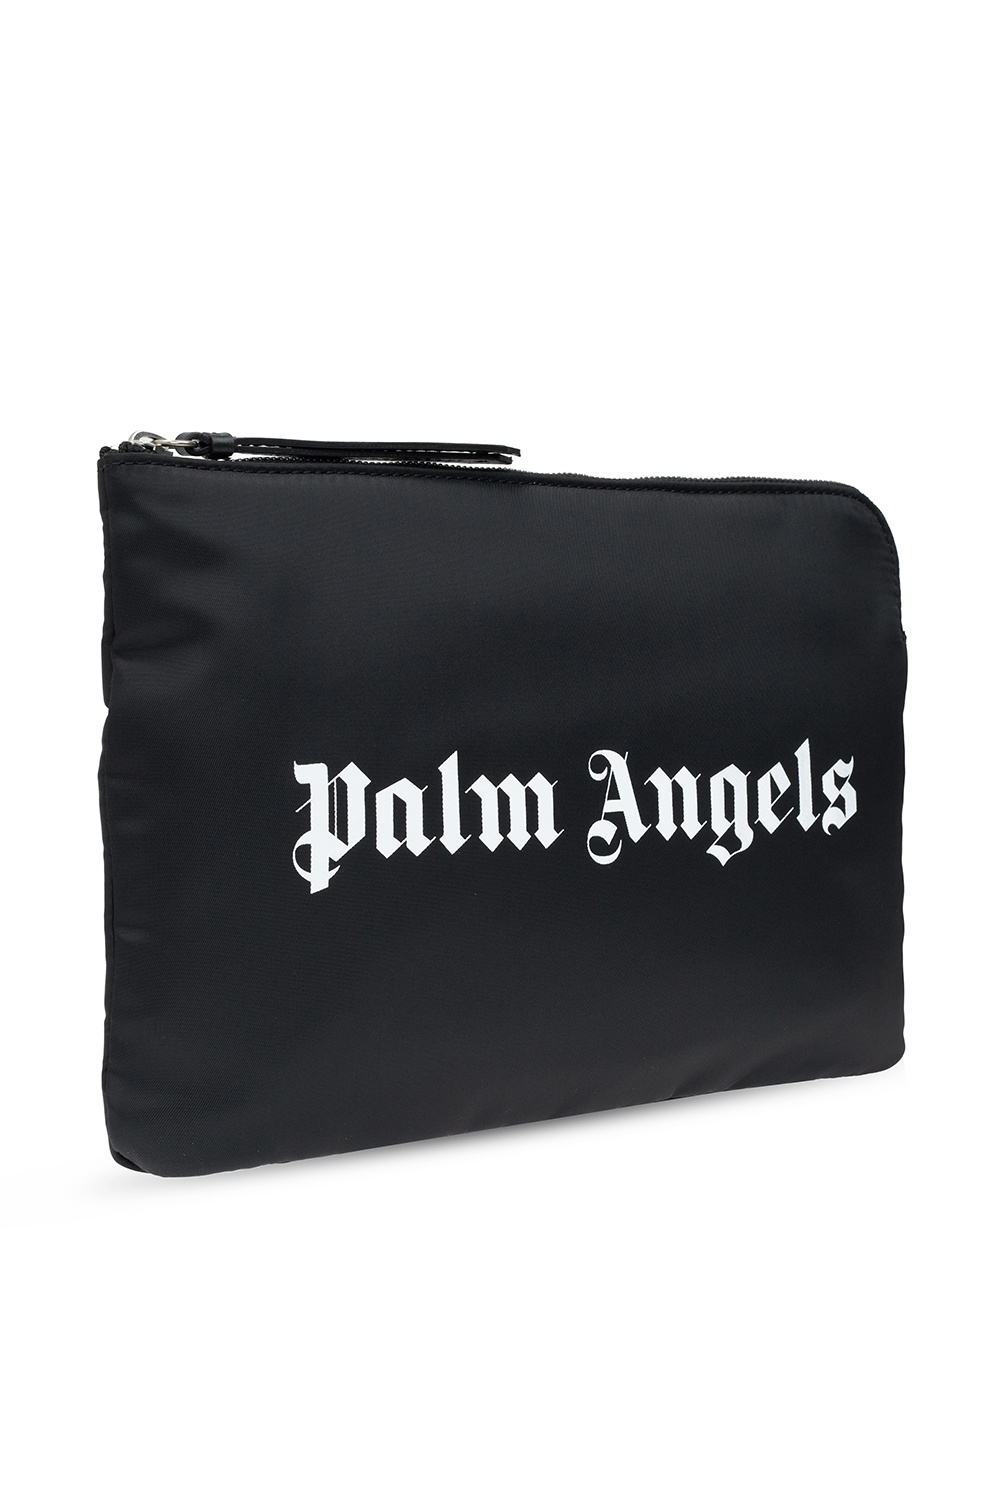 Palm Angels Clutch with logo